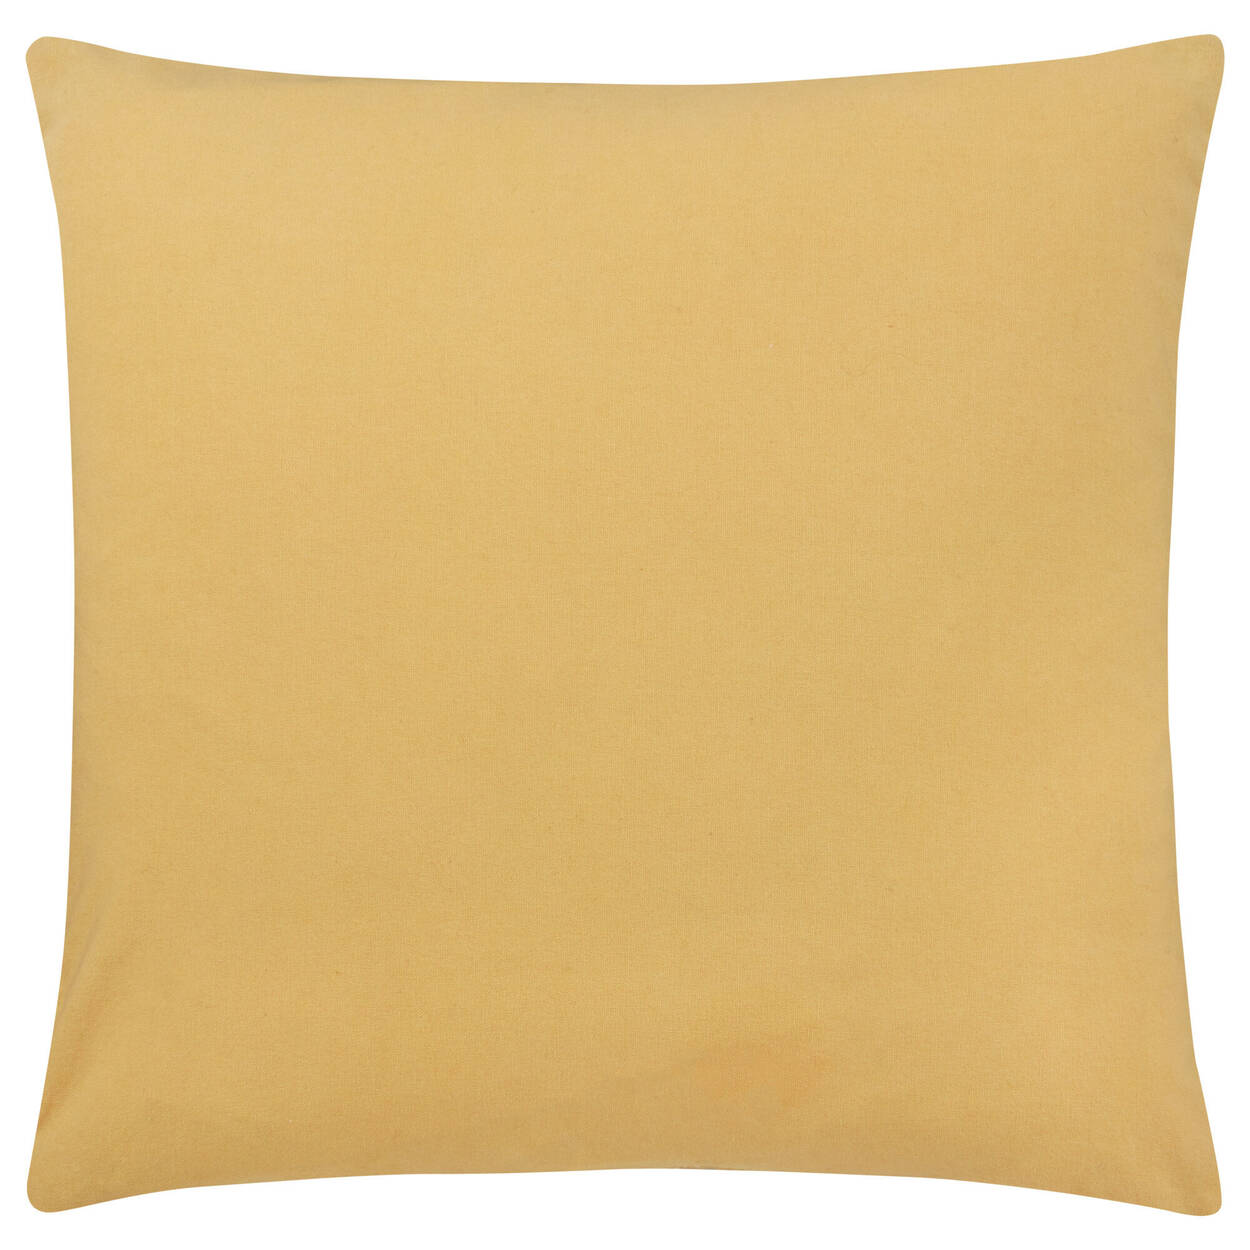 "Gawen Decorative Pillow 19"" x 19"""